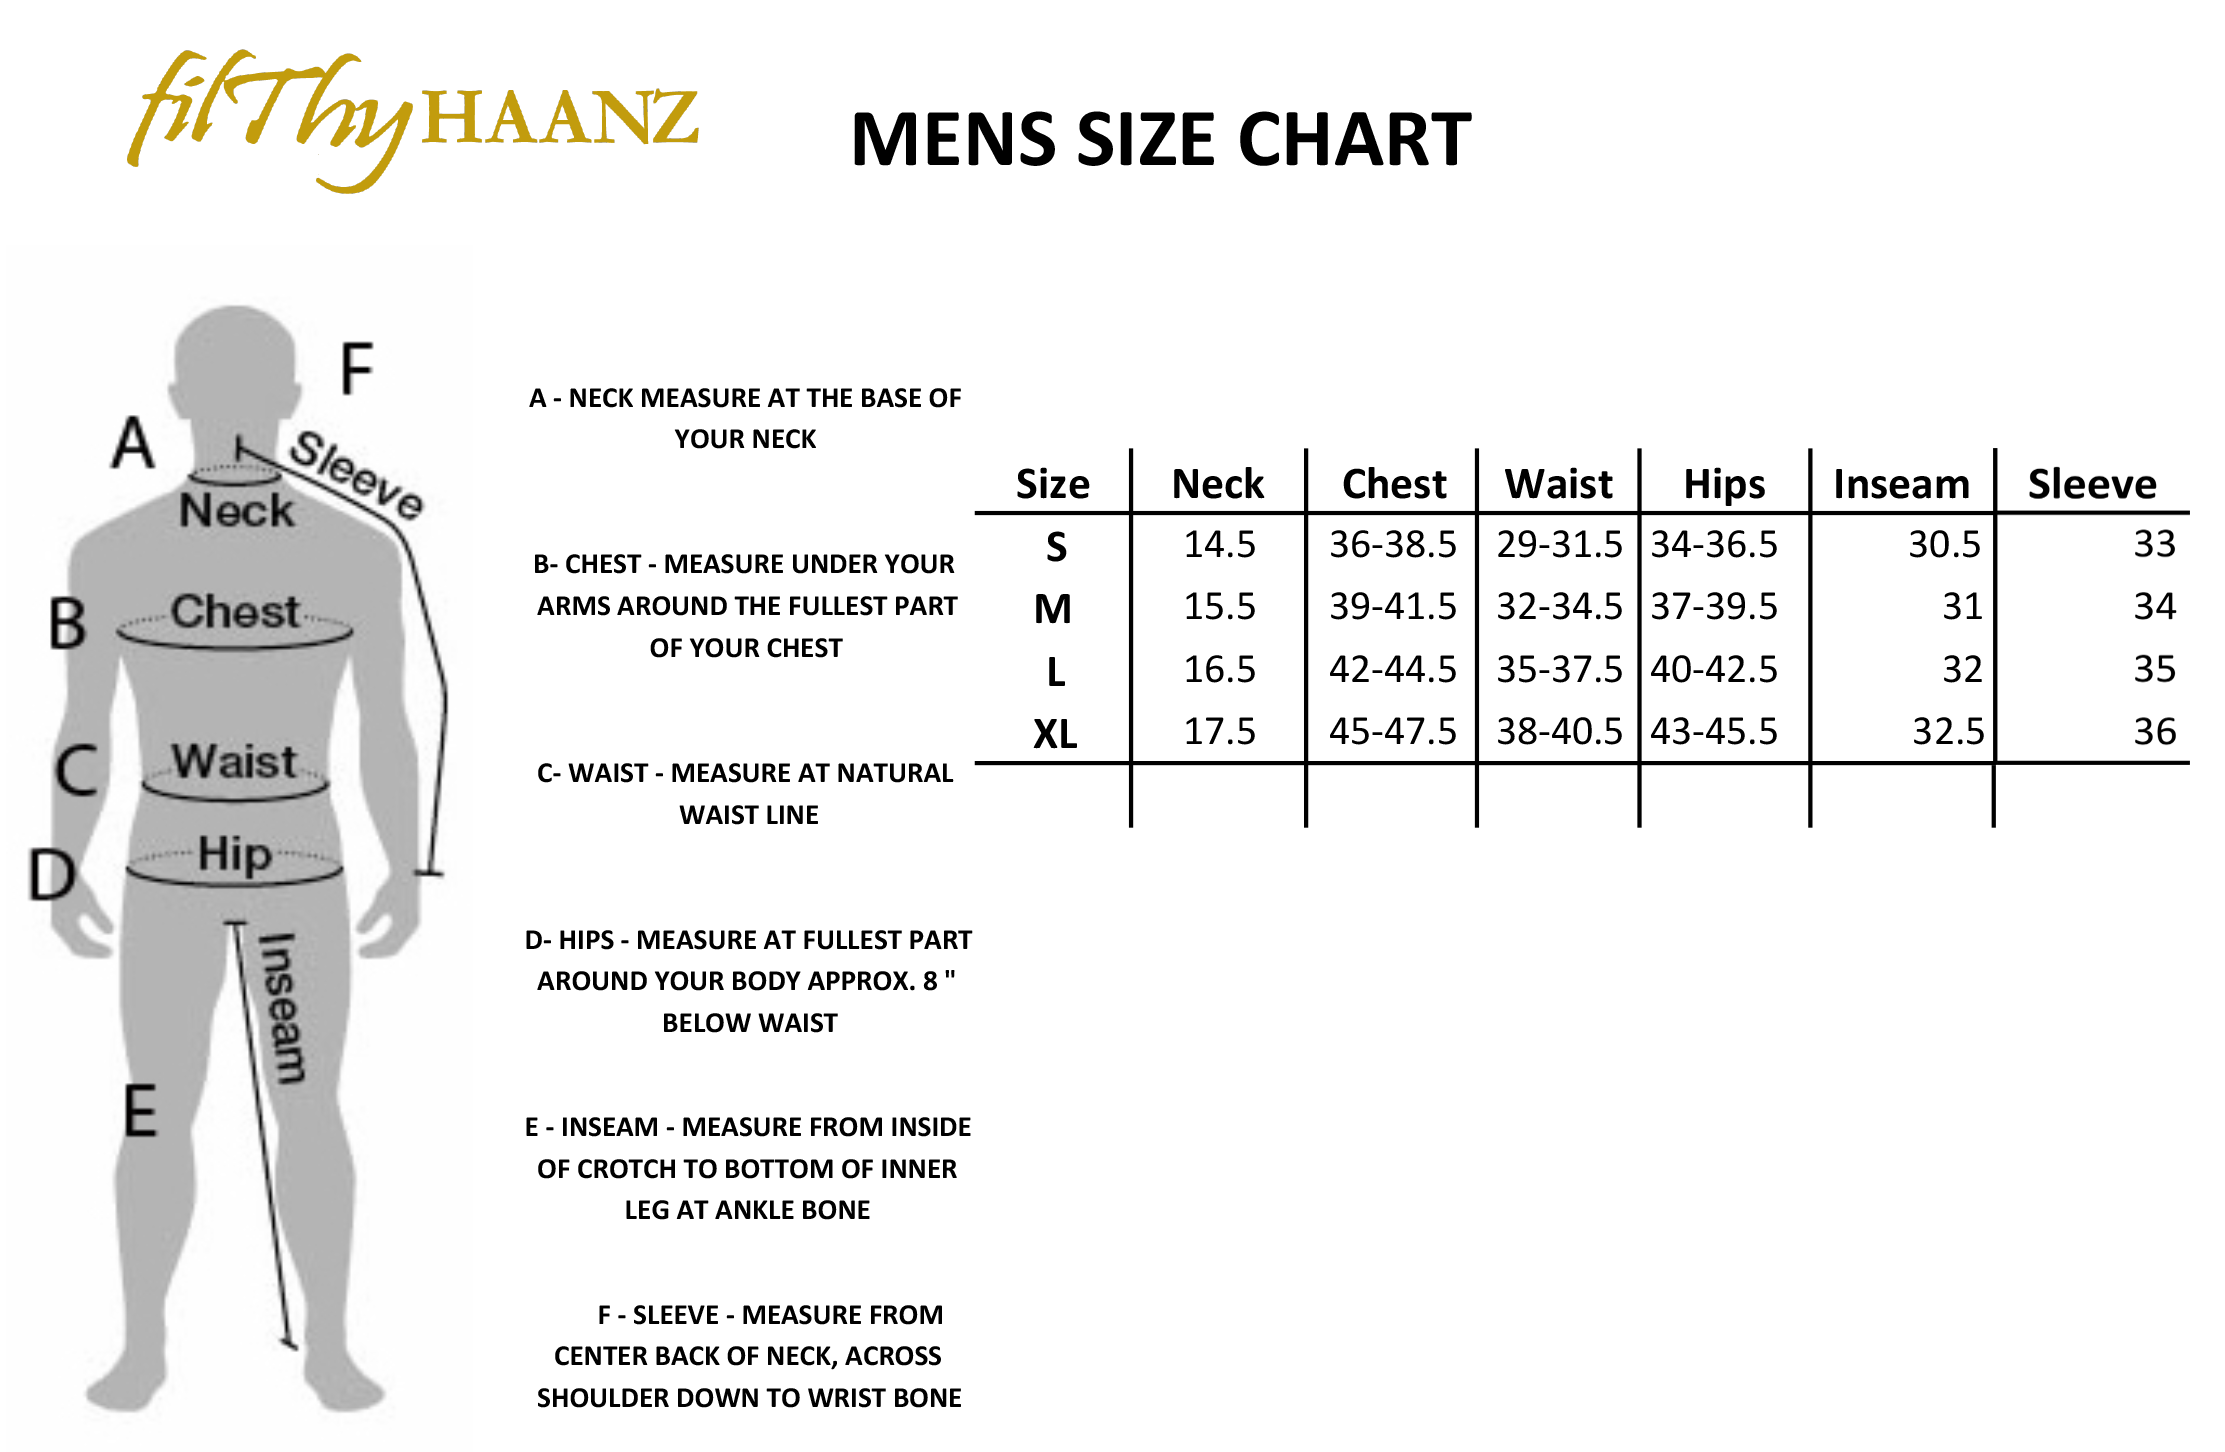 Official Size Guide - Filthyhaanz